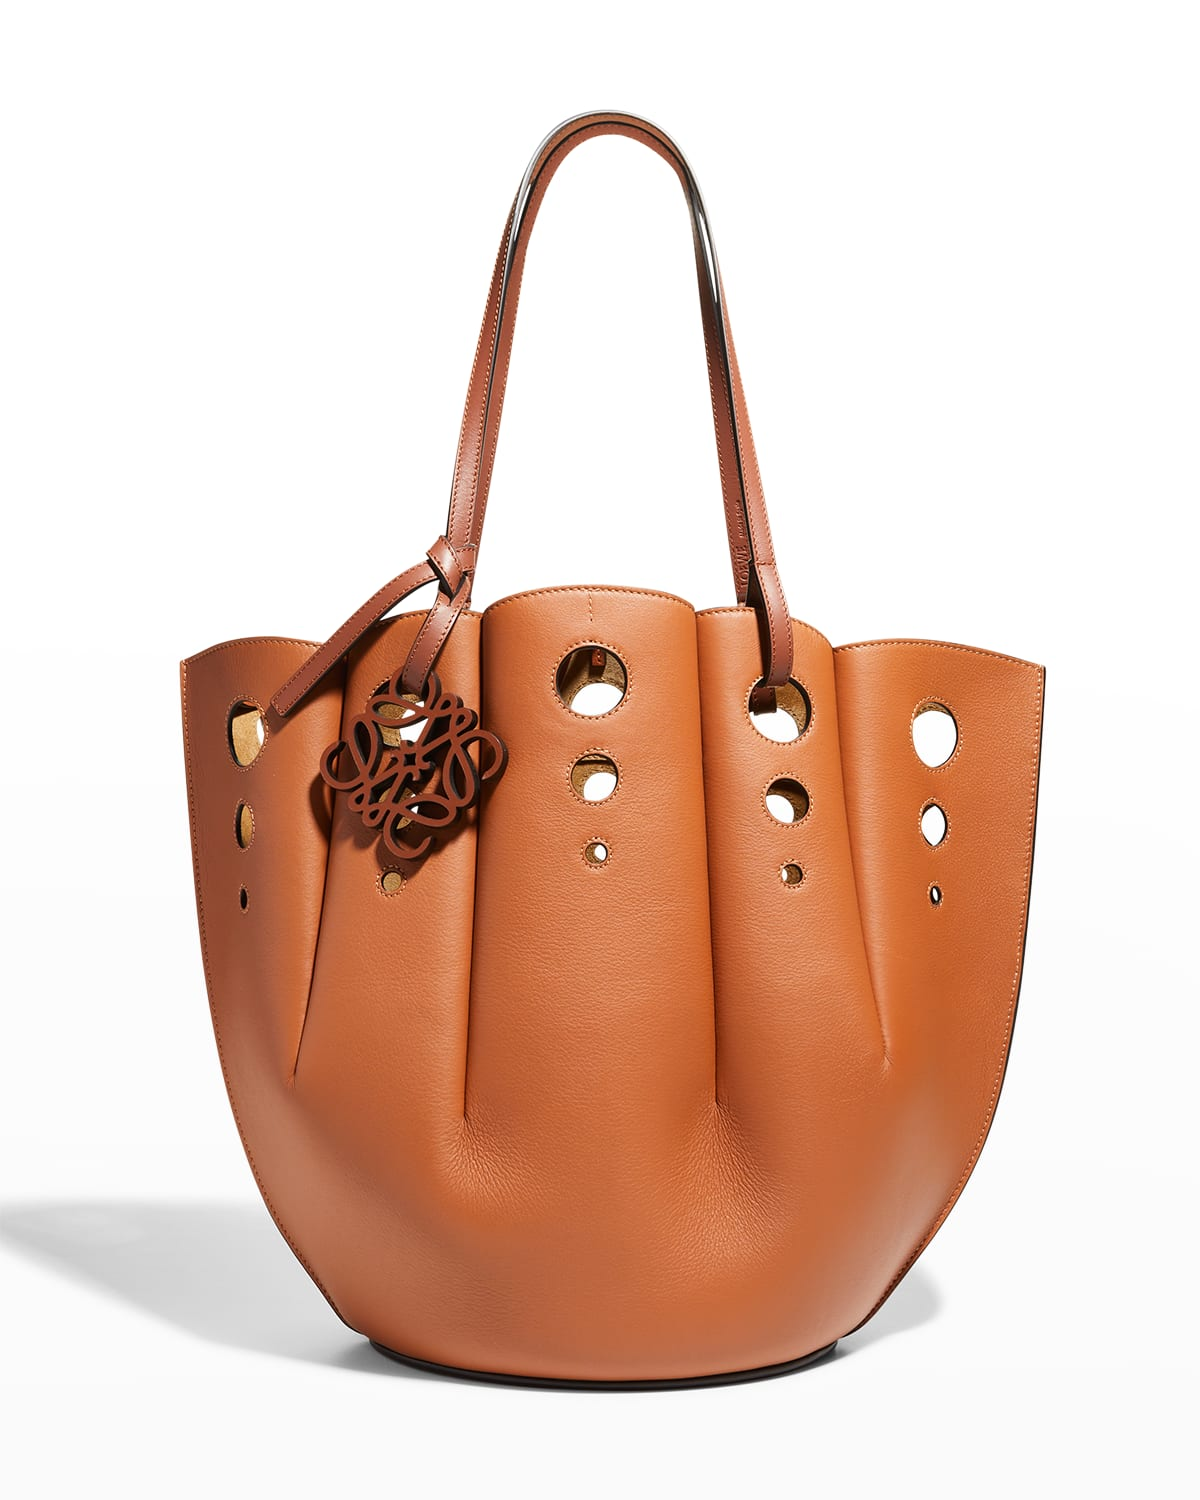 Shell Perforated Calfskin Tote Bag